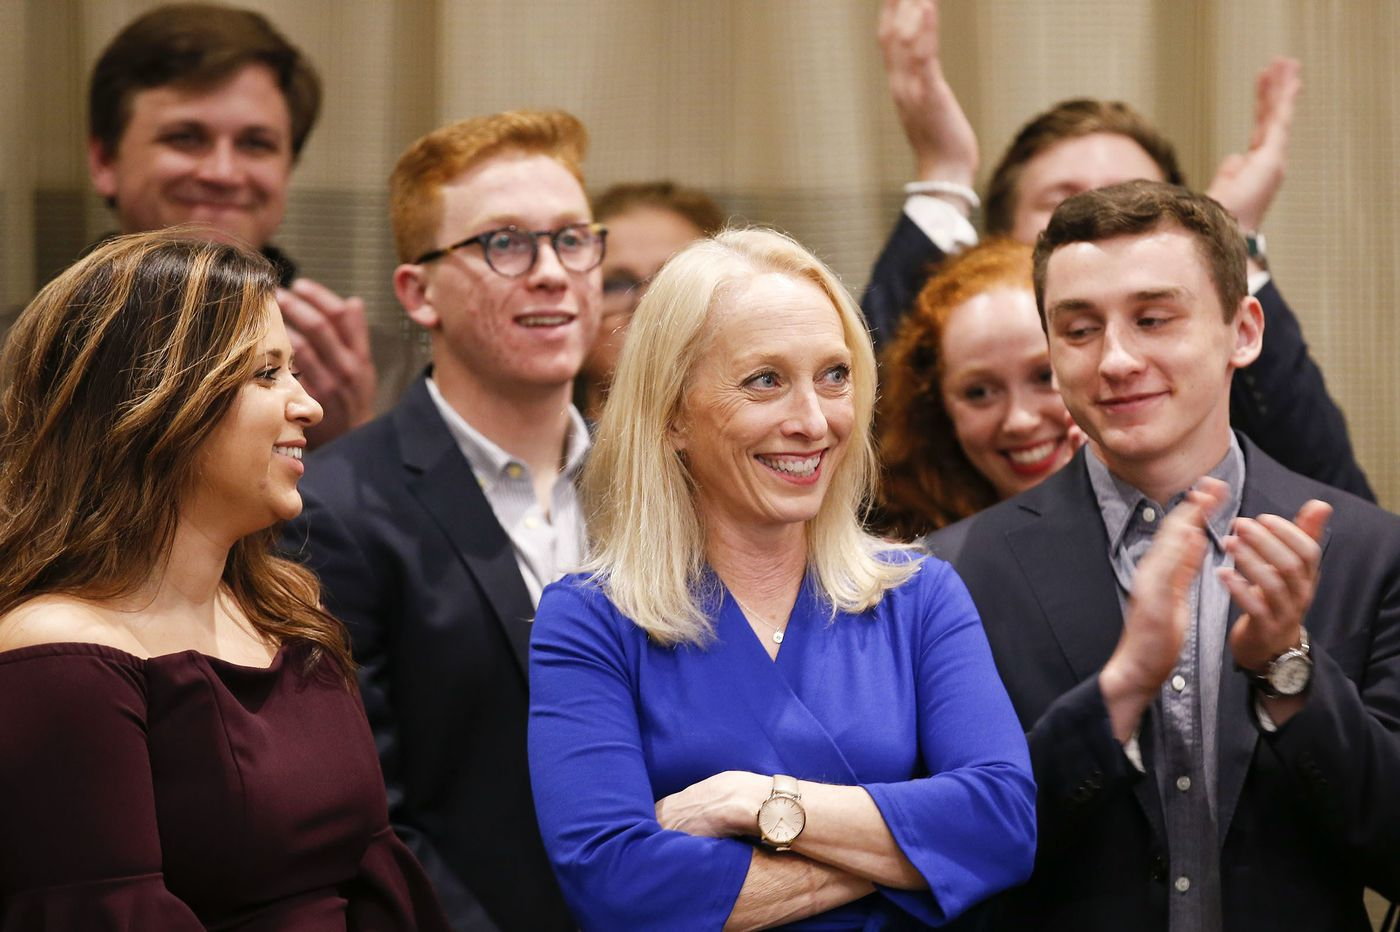 Mary Gay Scanlon wins Pa.'s Fifth Congressional District